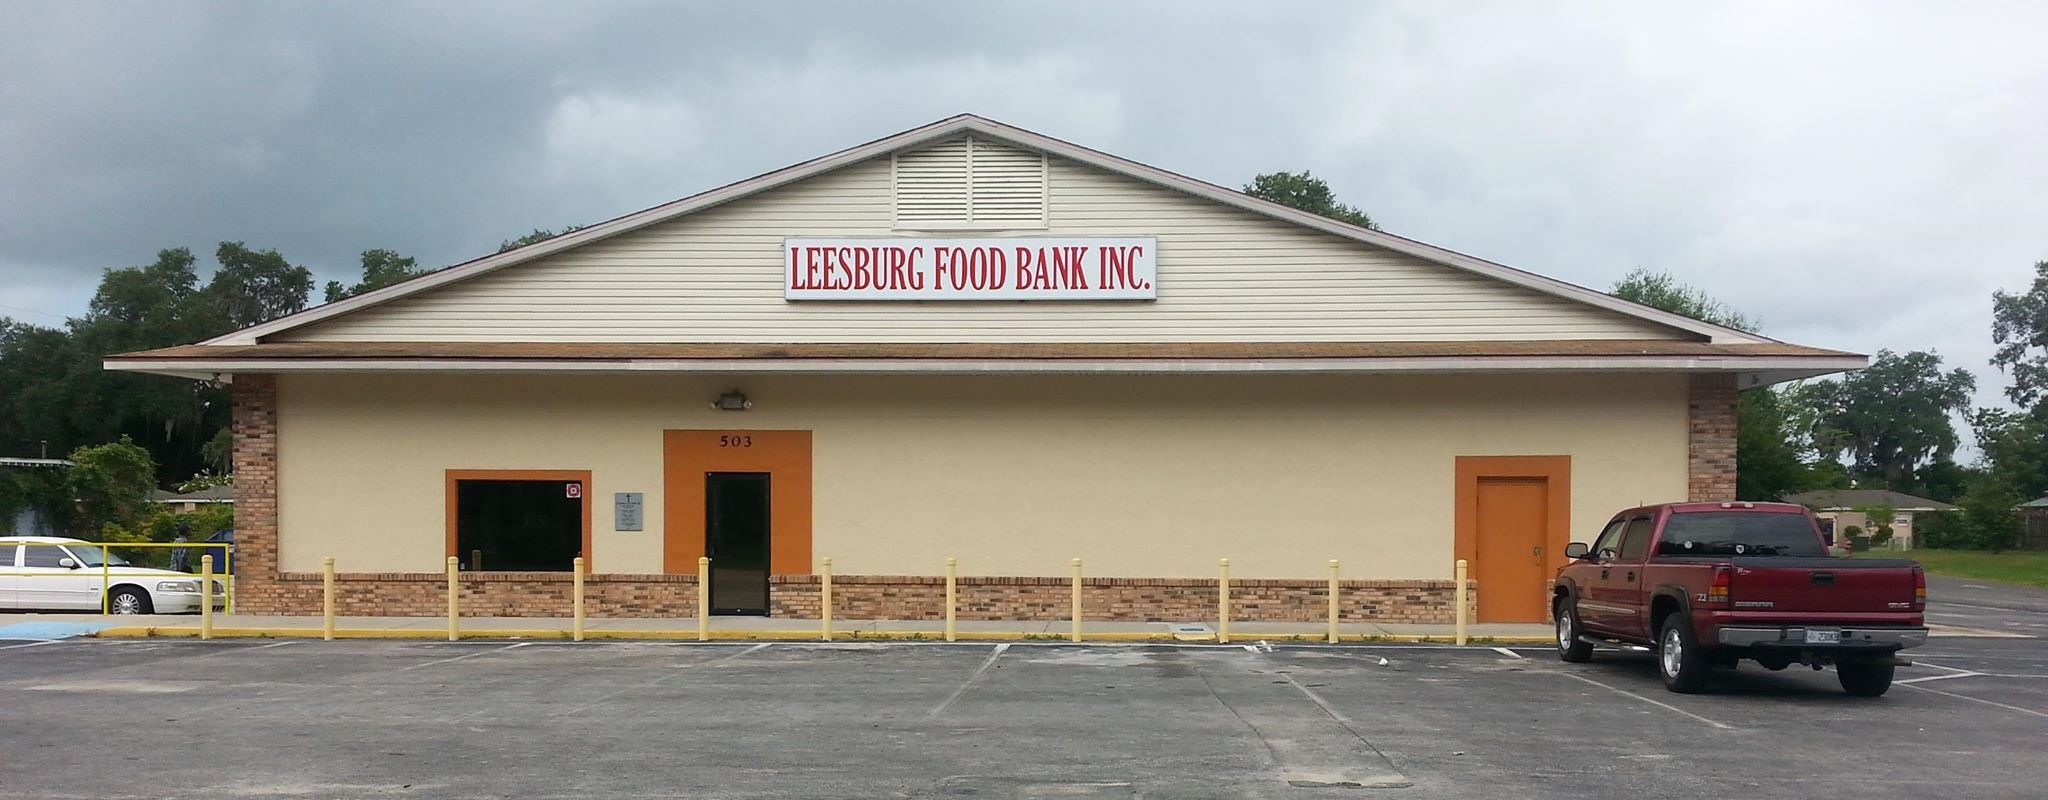 Leesburg Food Bank Inc